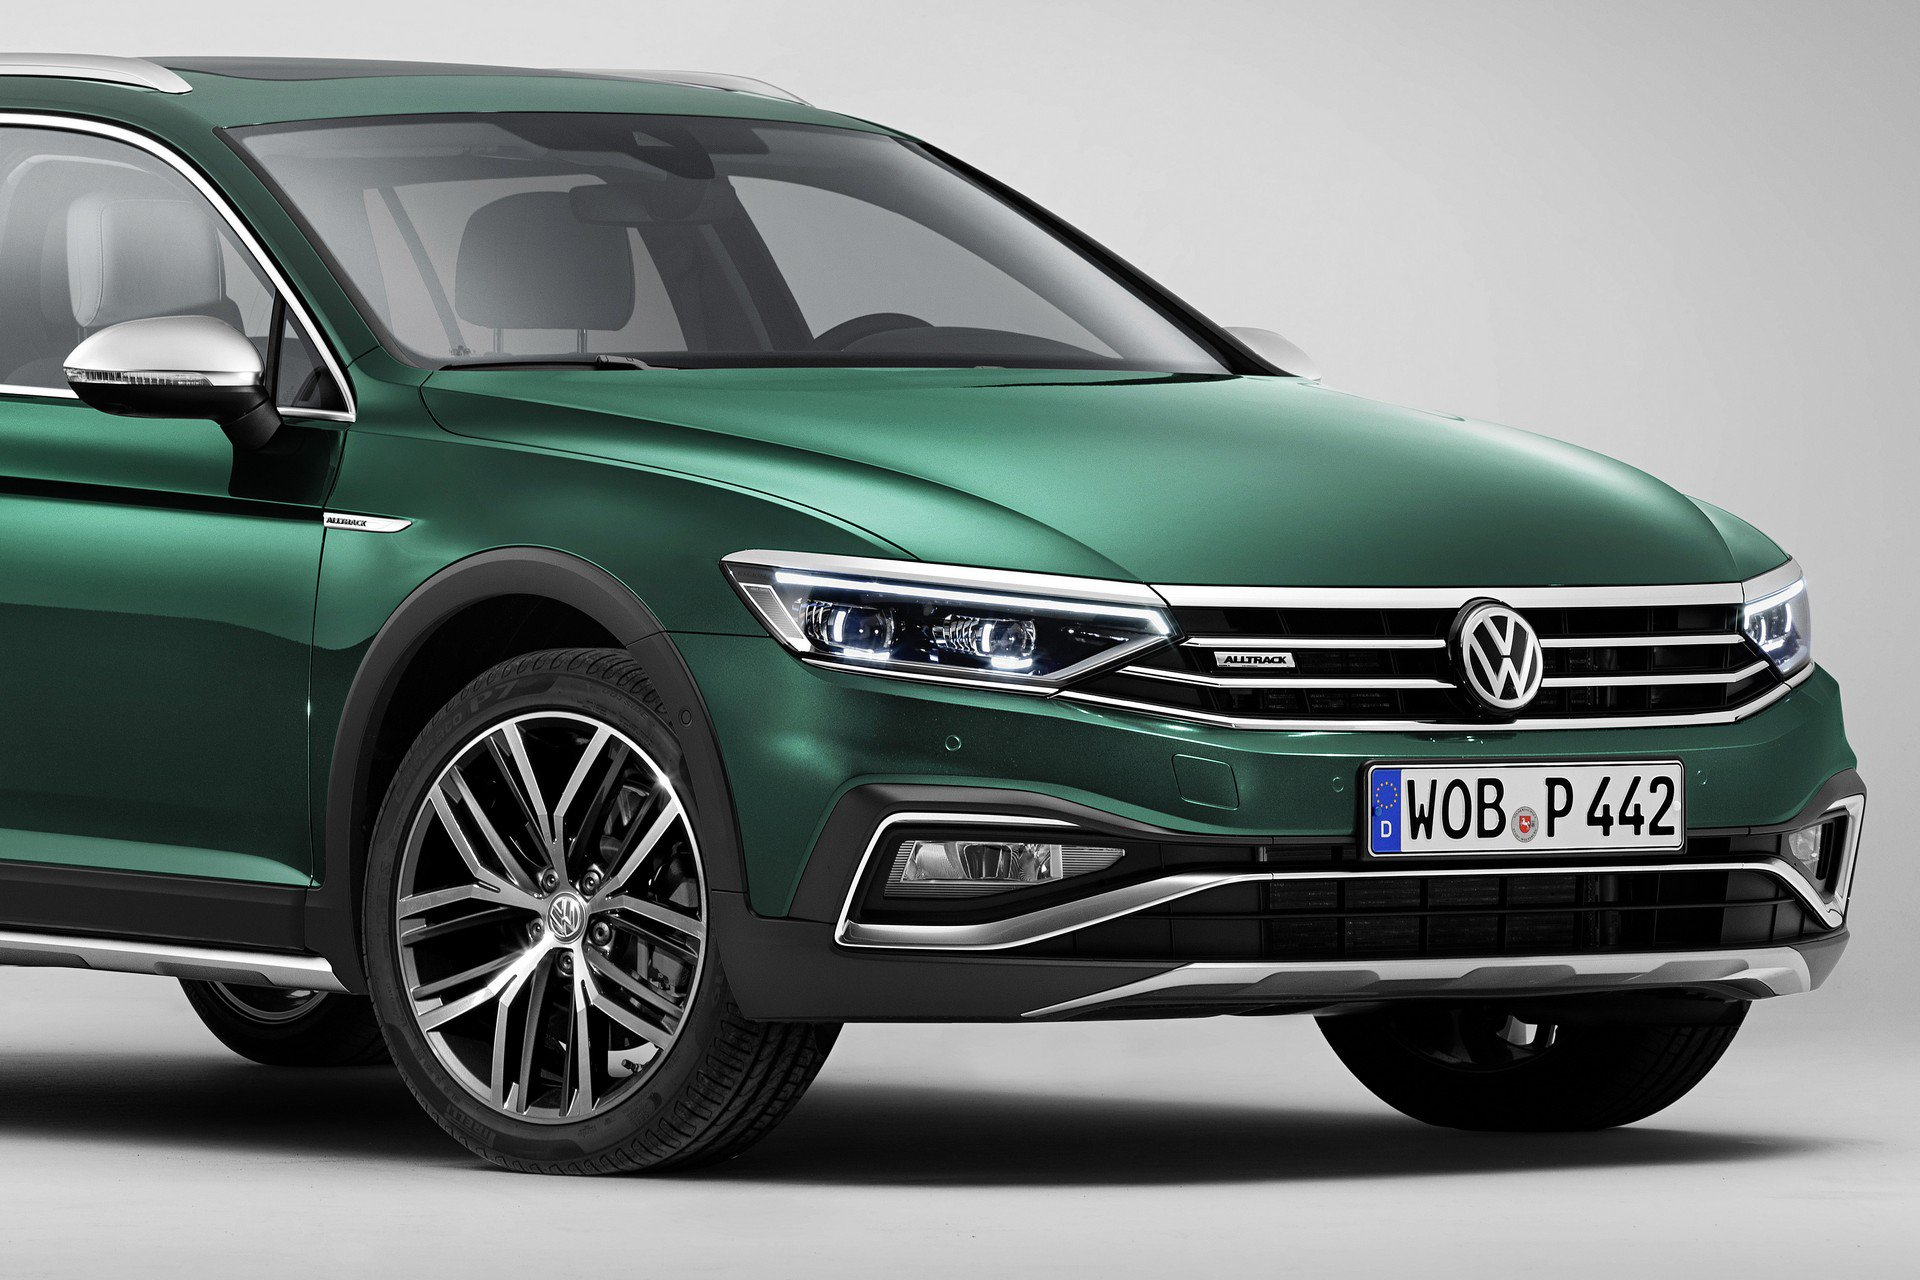 2020 Volkswagen Passat Facelift Adds Partially Automated Driving